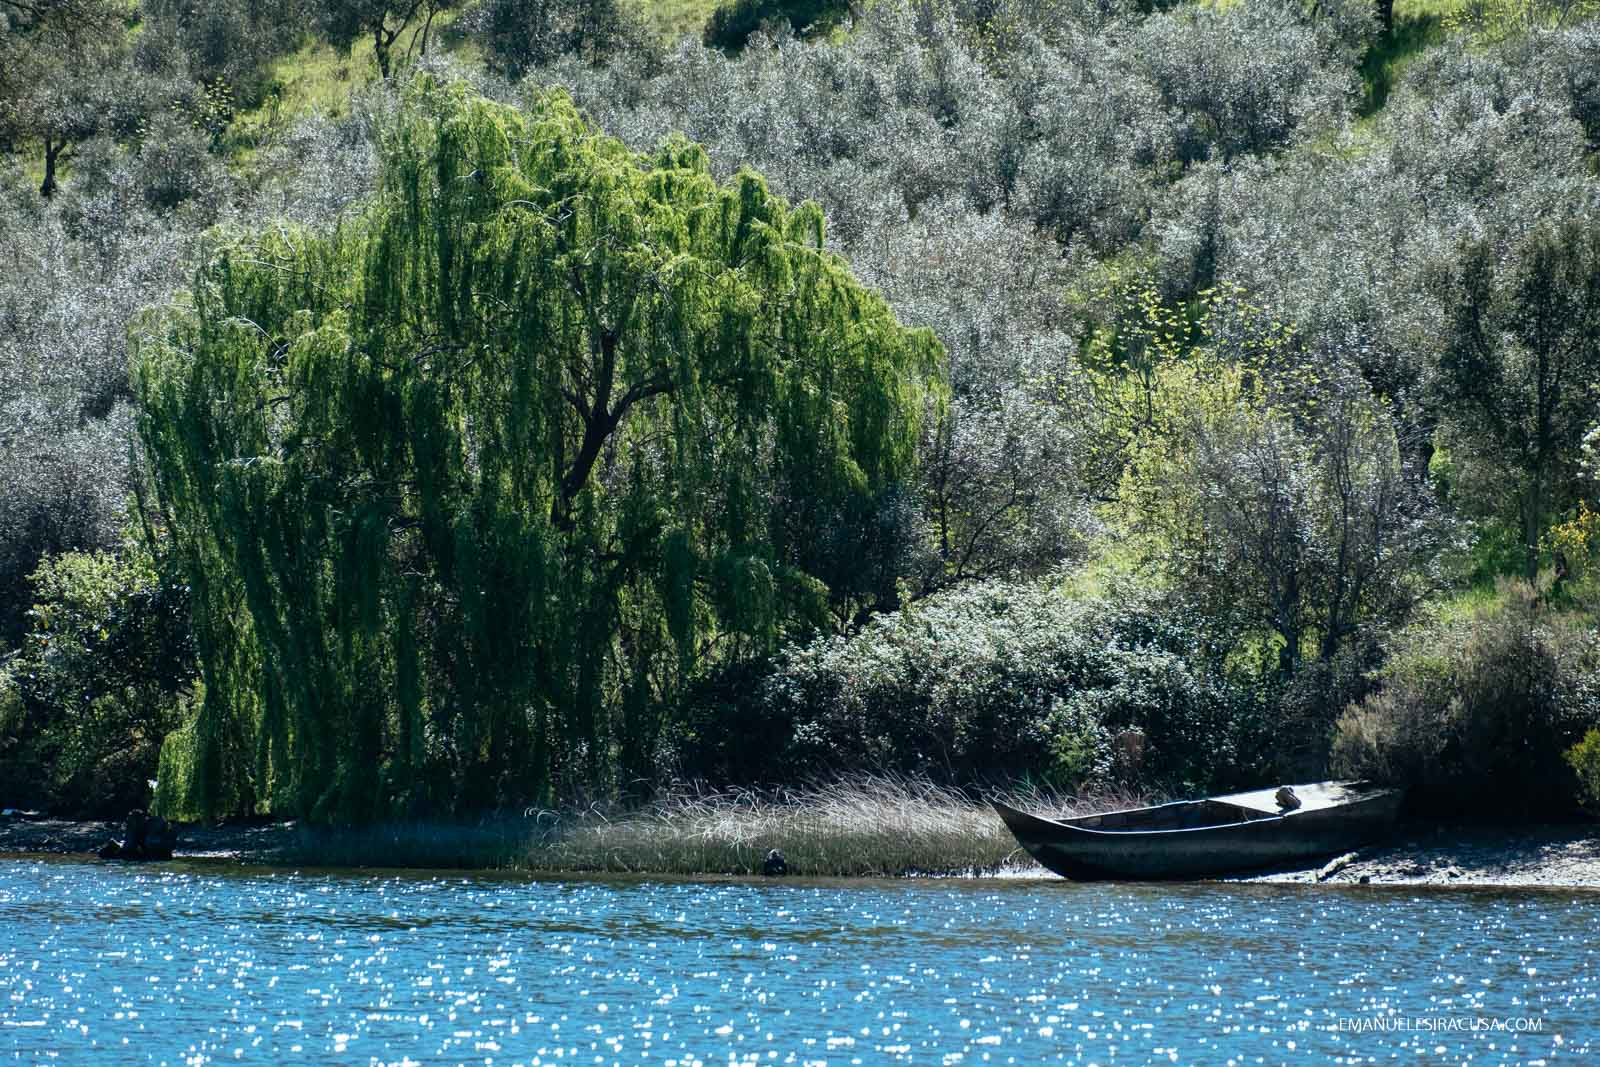 a traditional fishing boat at rest on the spanish bank of the Tejo River, close to Malpica do Tejo, 2016